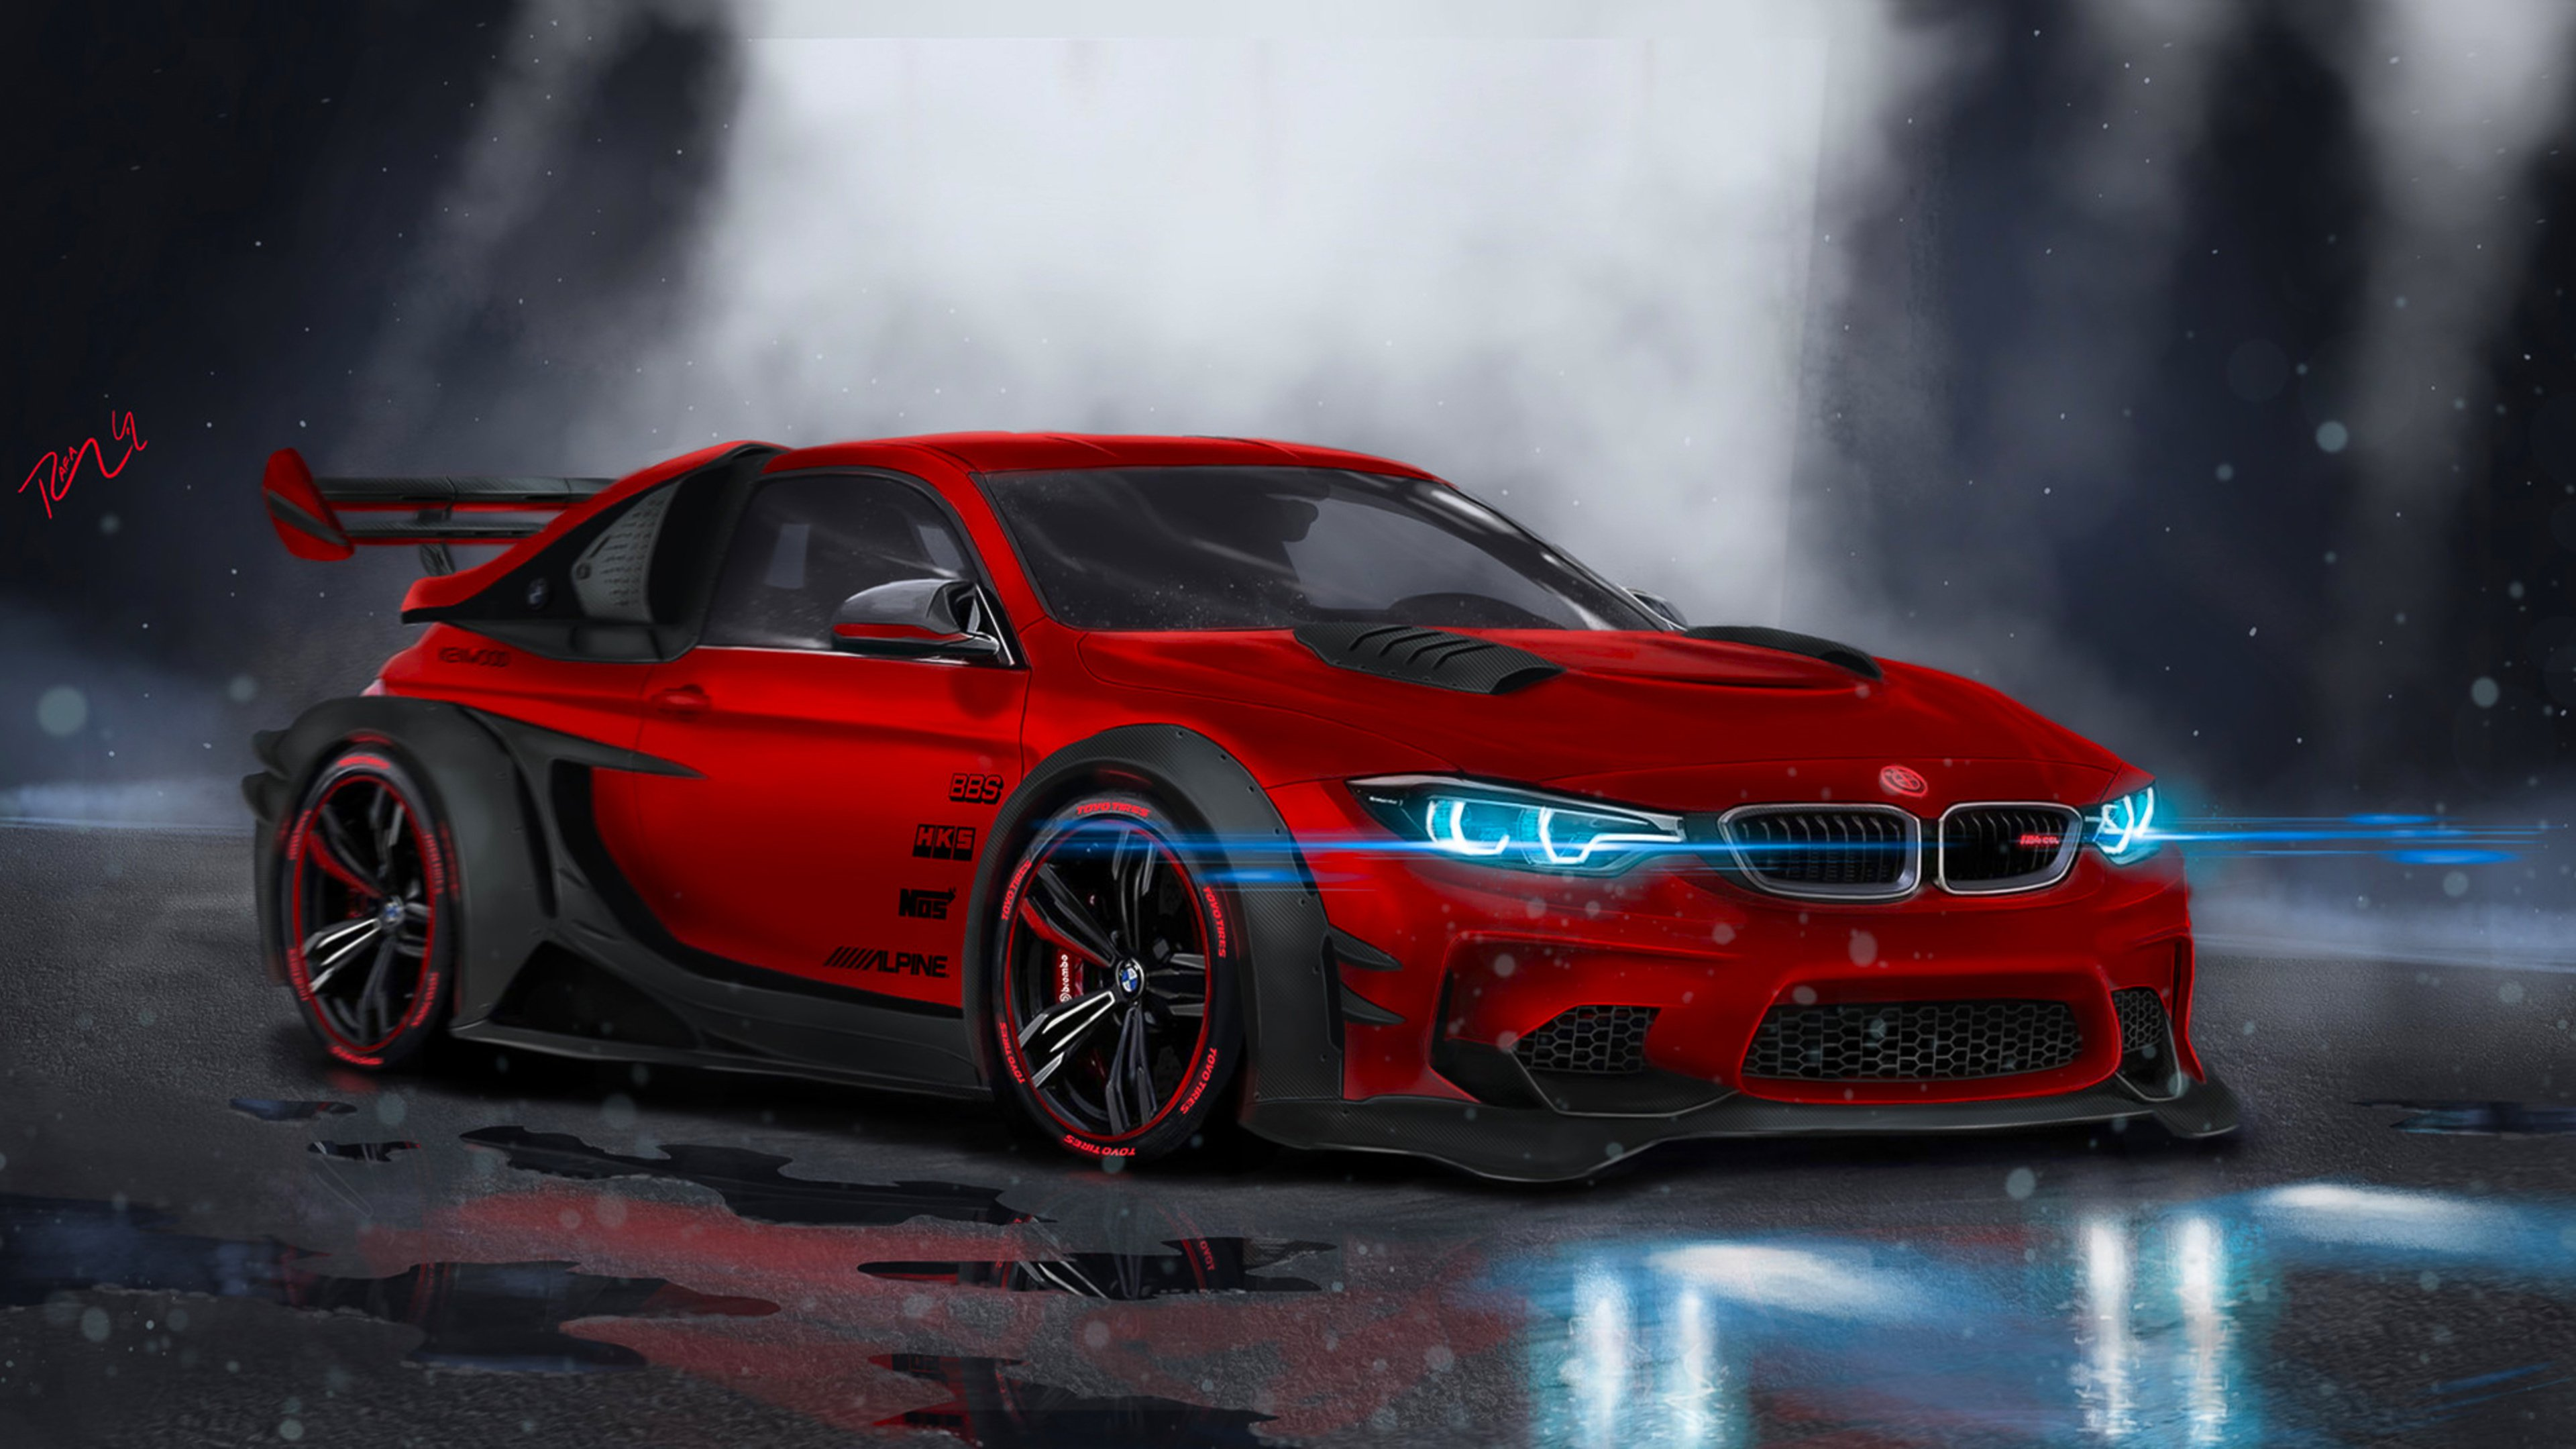 2880x1800 BMW M4 Highly Modified Macbook Pro Retina HD 4k Wallpapers     BMW M4 Highly Modified  Macbook Pro Retina